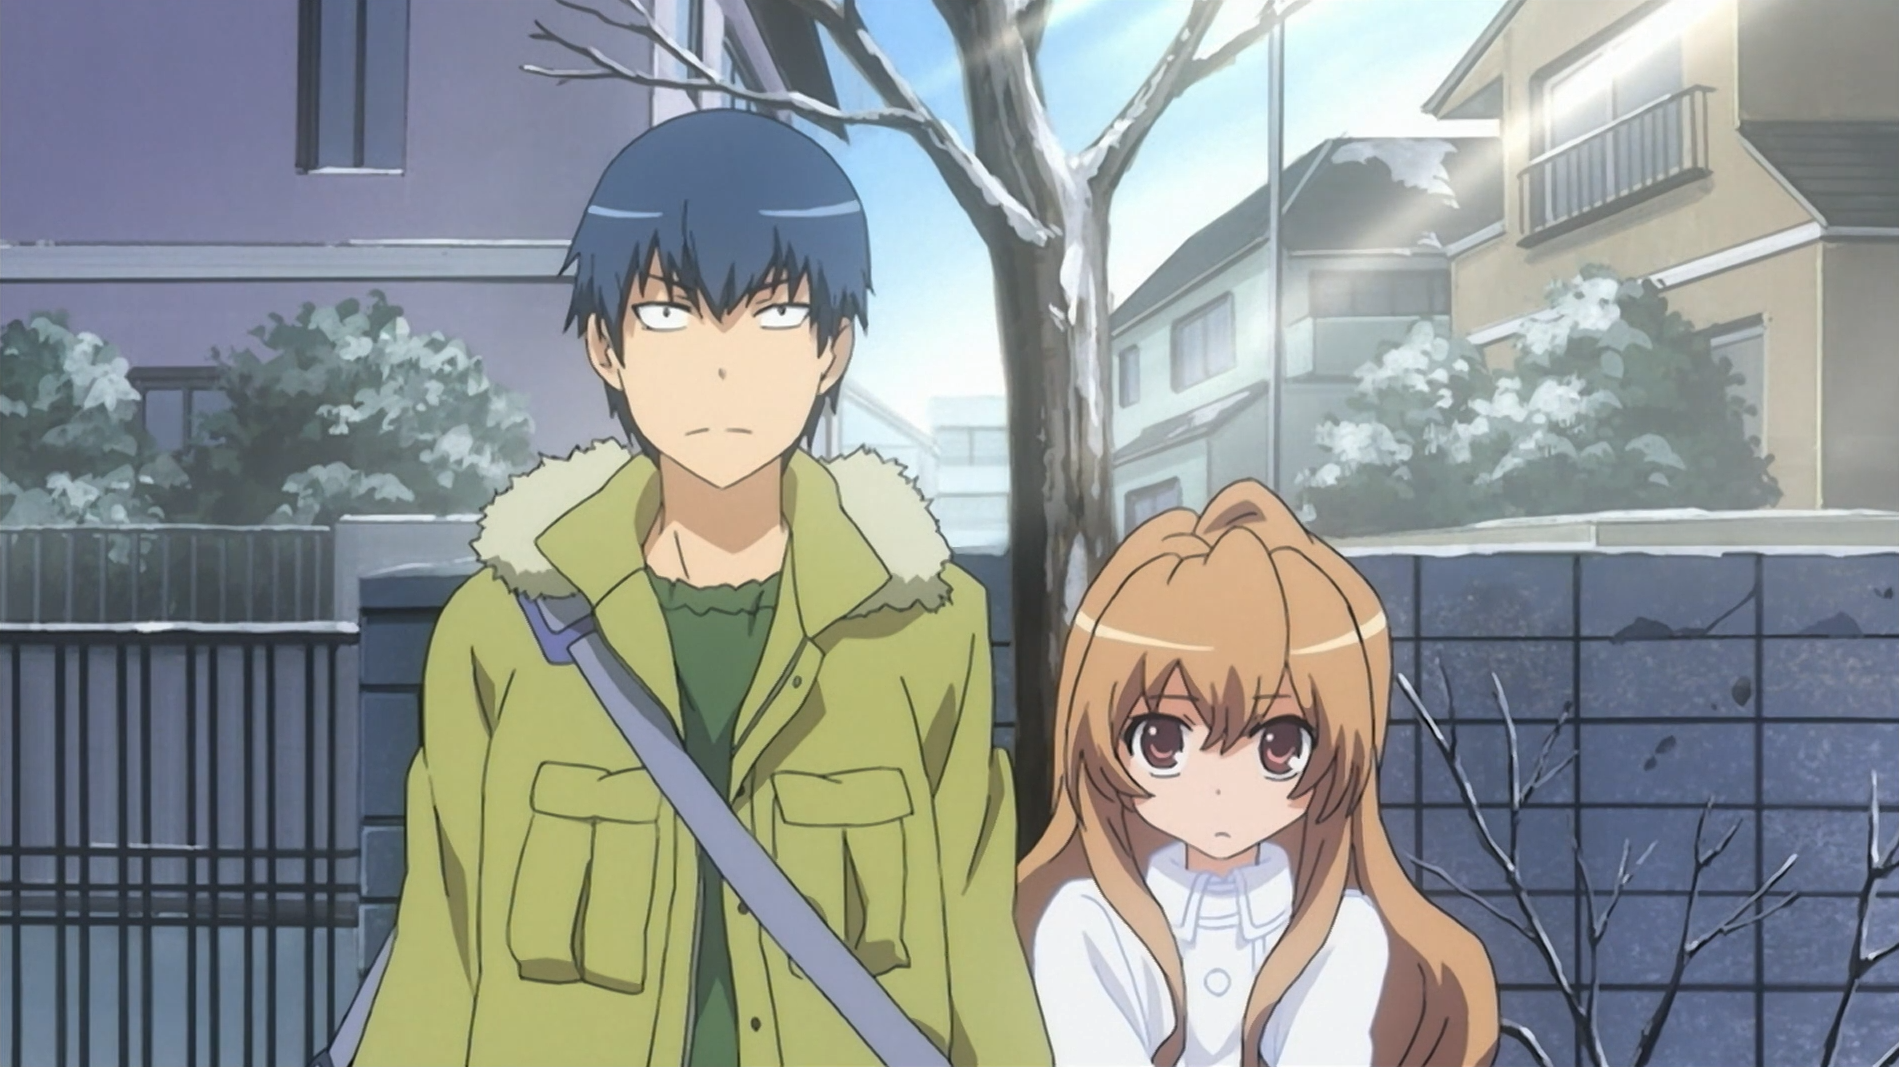 Ryuji and Taiga prepare to announce their marriage to Taigai's parents in a scene from the Toradora! TV anime.